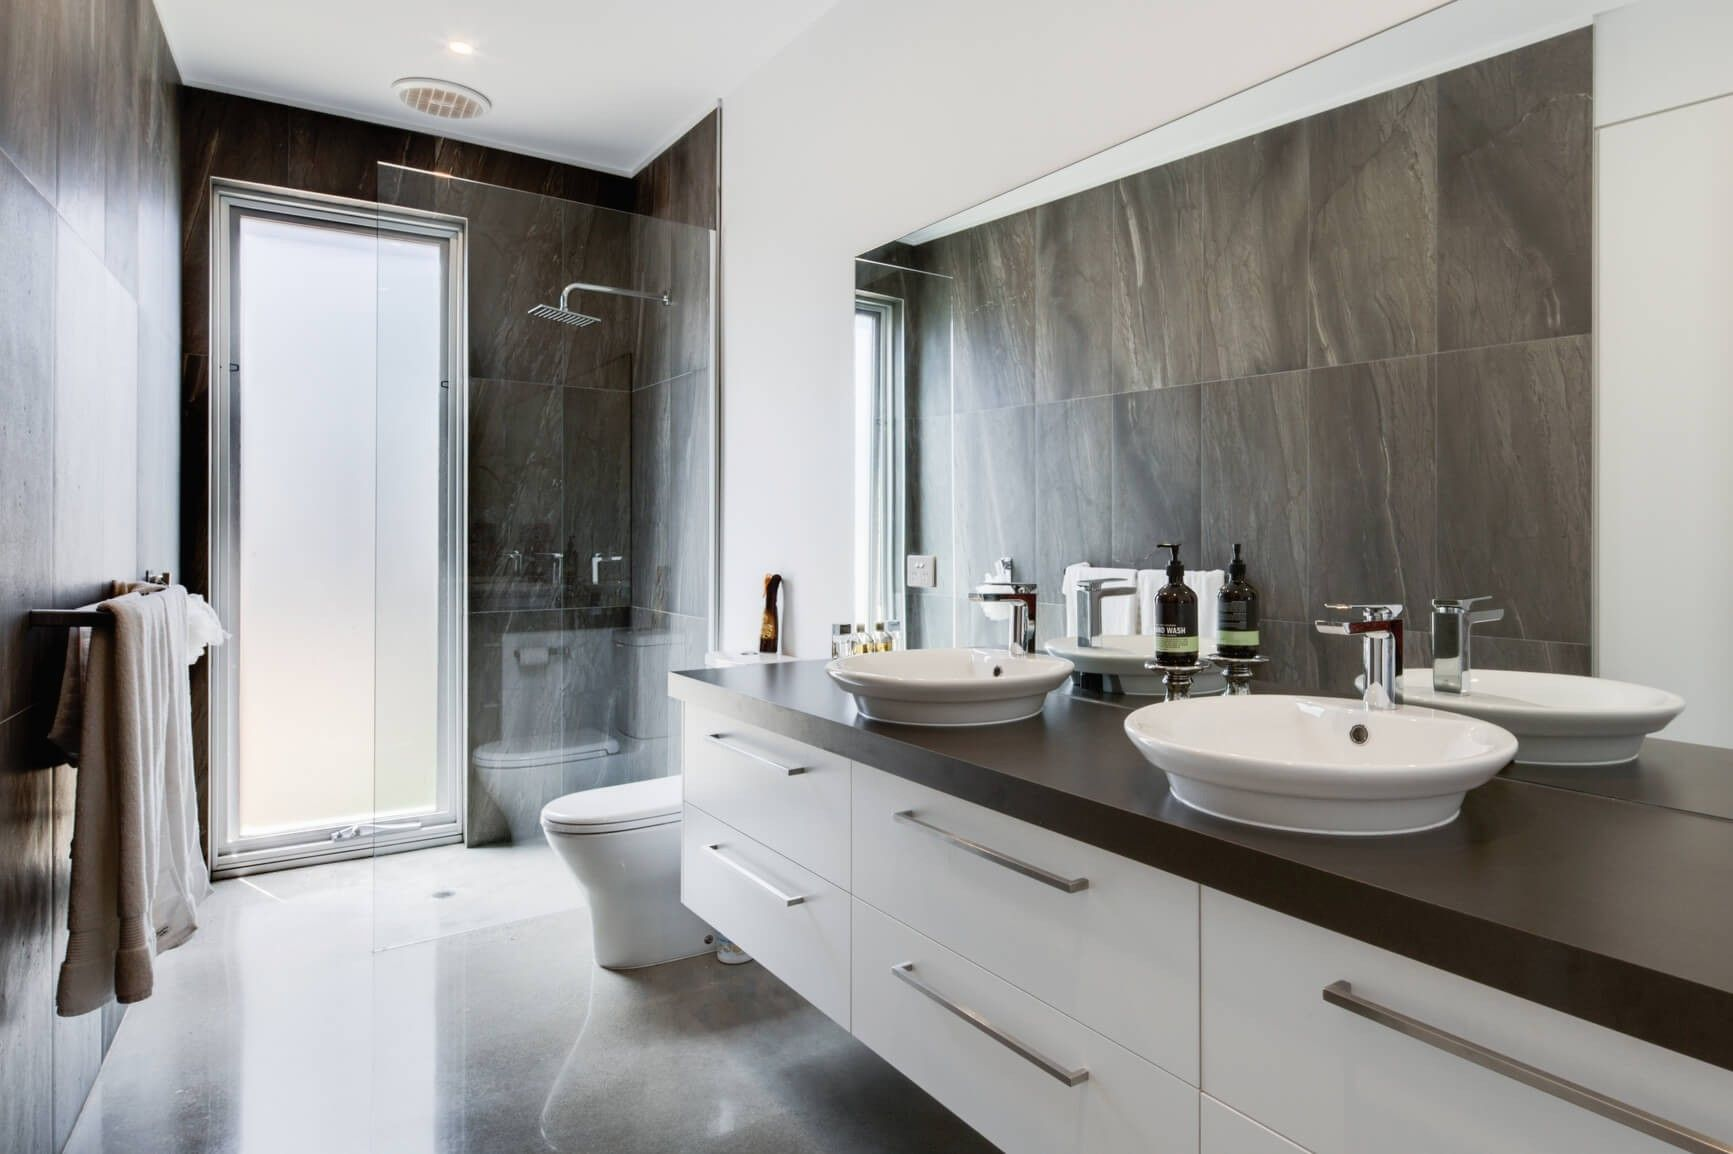 50 Images How Much Does Bathroom Remodel Cost Bathroom Renovation Trends Bathroom Remodel Cost Bathrooms Remodel